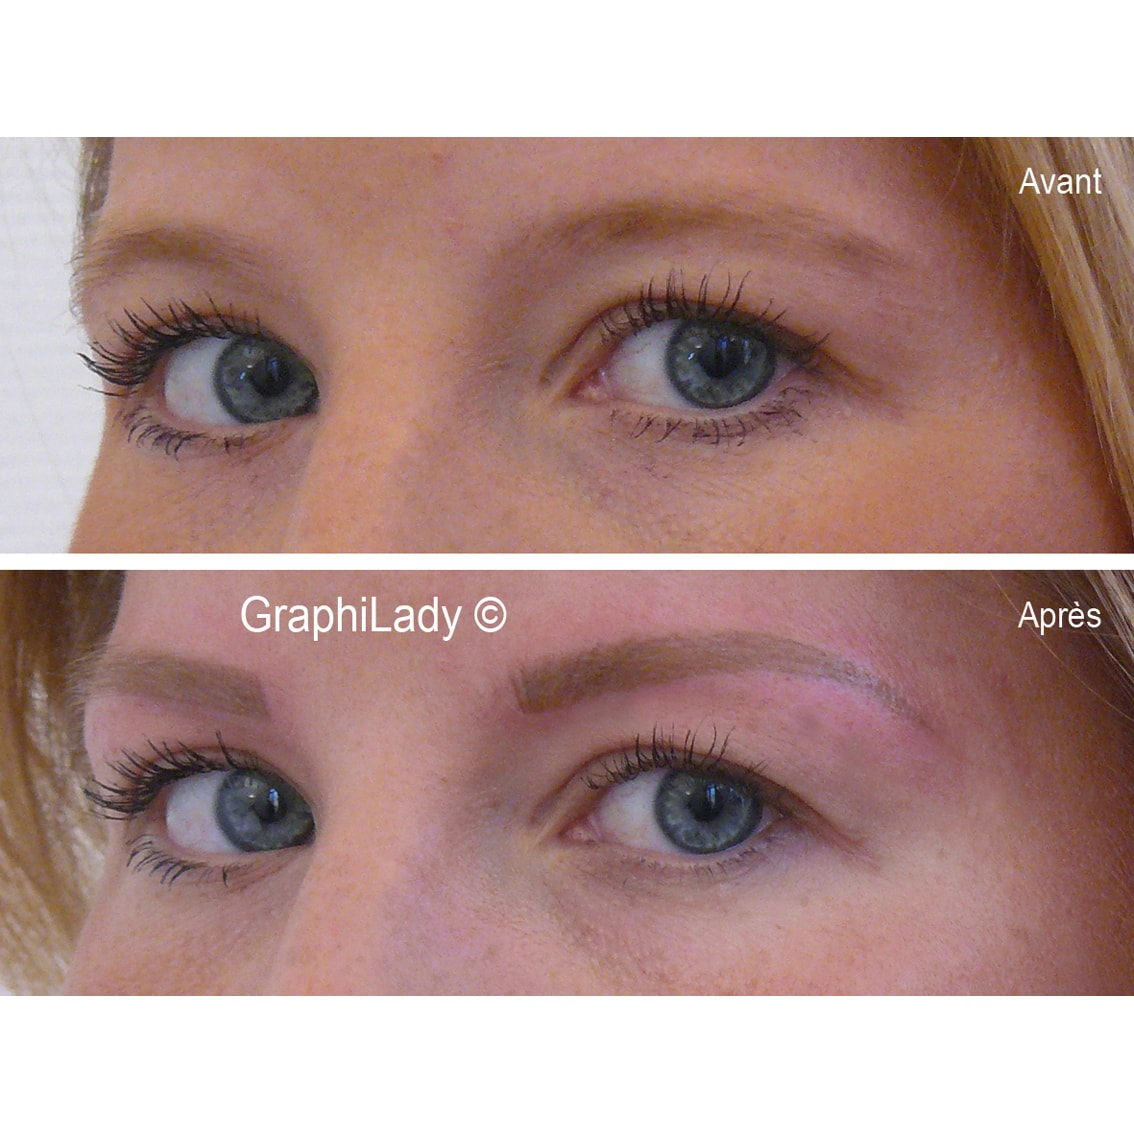 maquillage permanent sourcils 08 graphilady